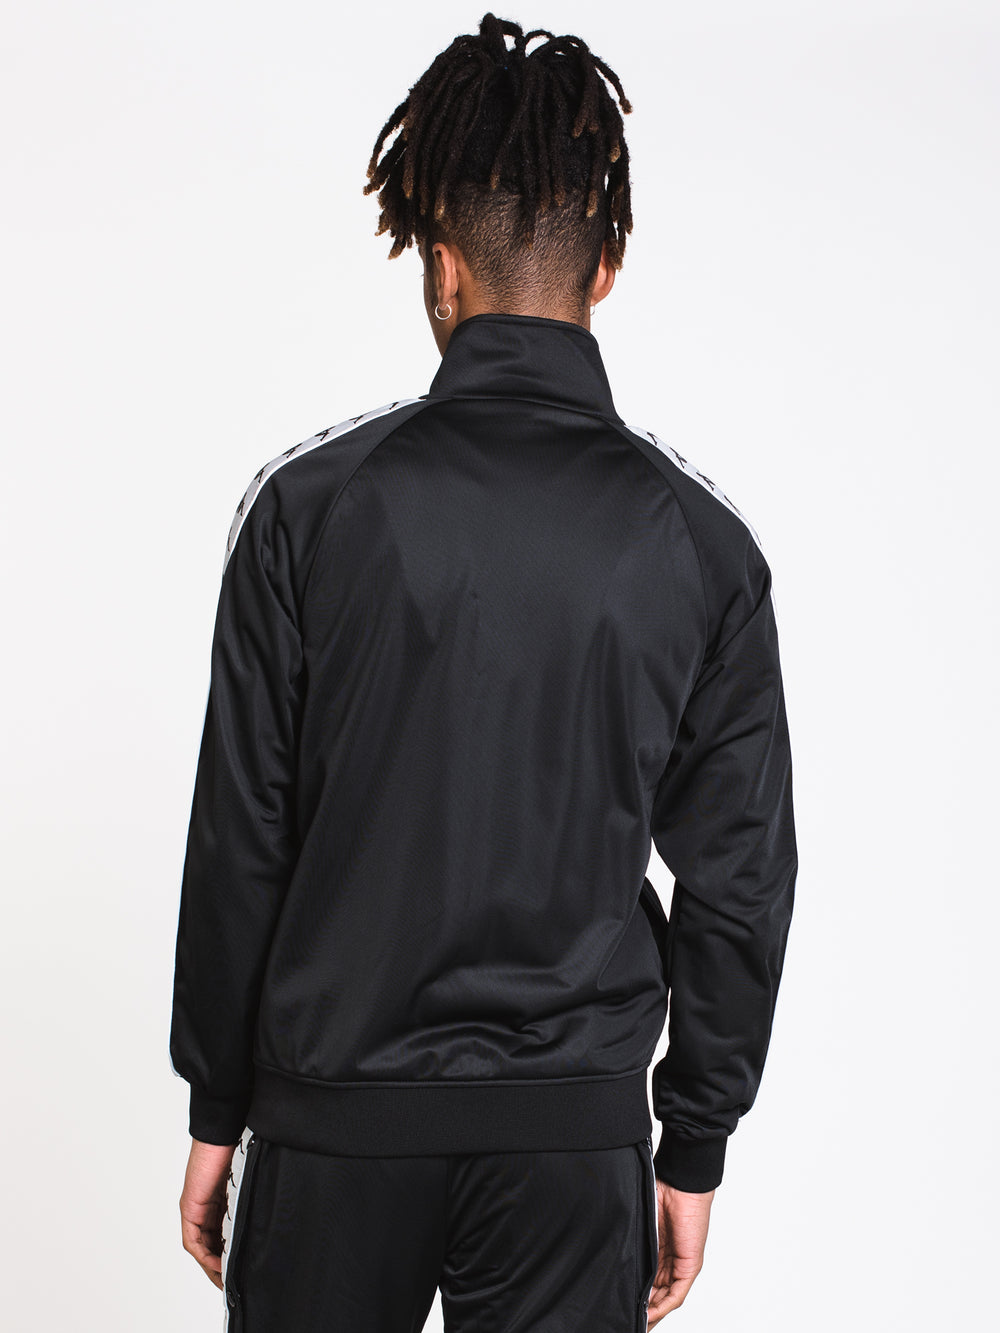 MENS BANDA ANNISTON FULL ZIP Jacket - BLACK